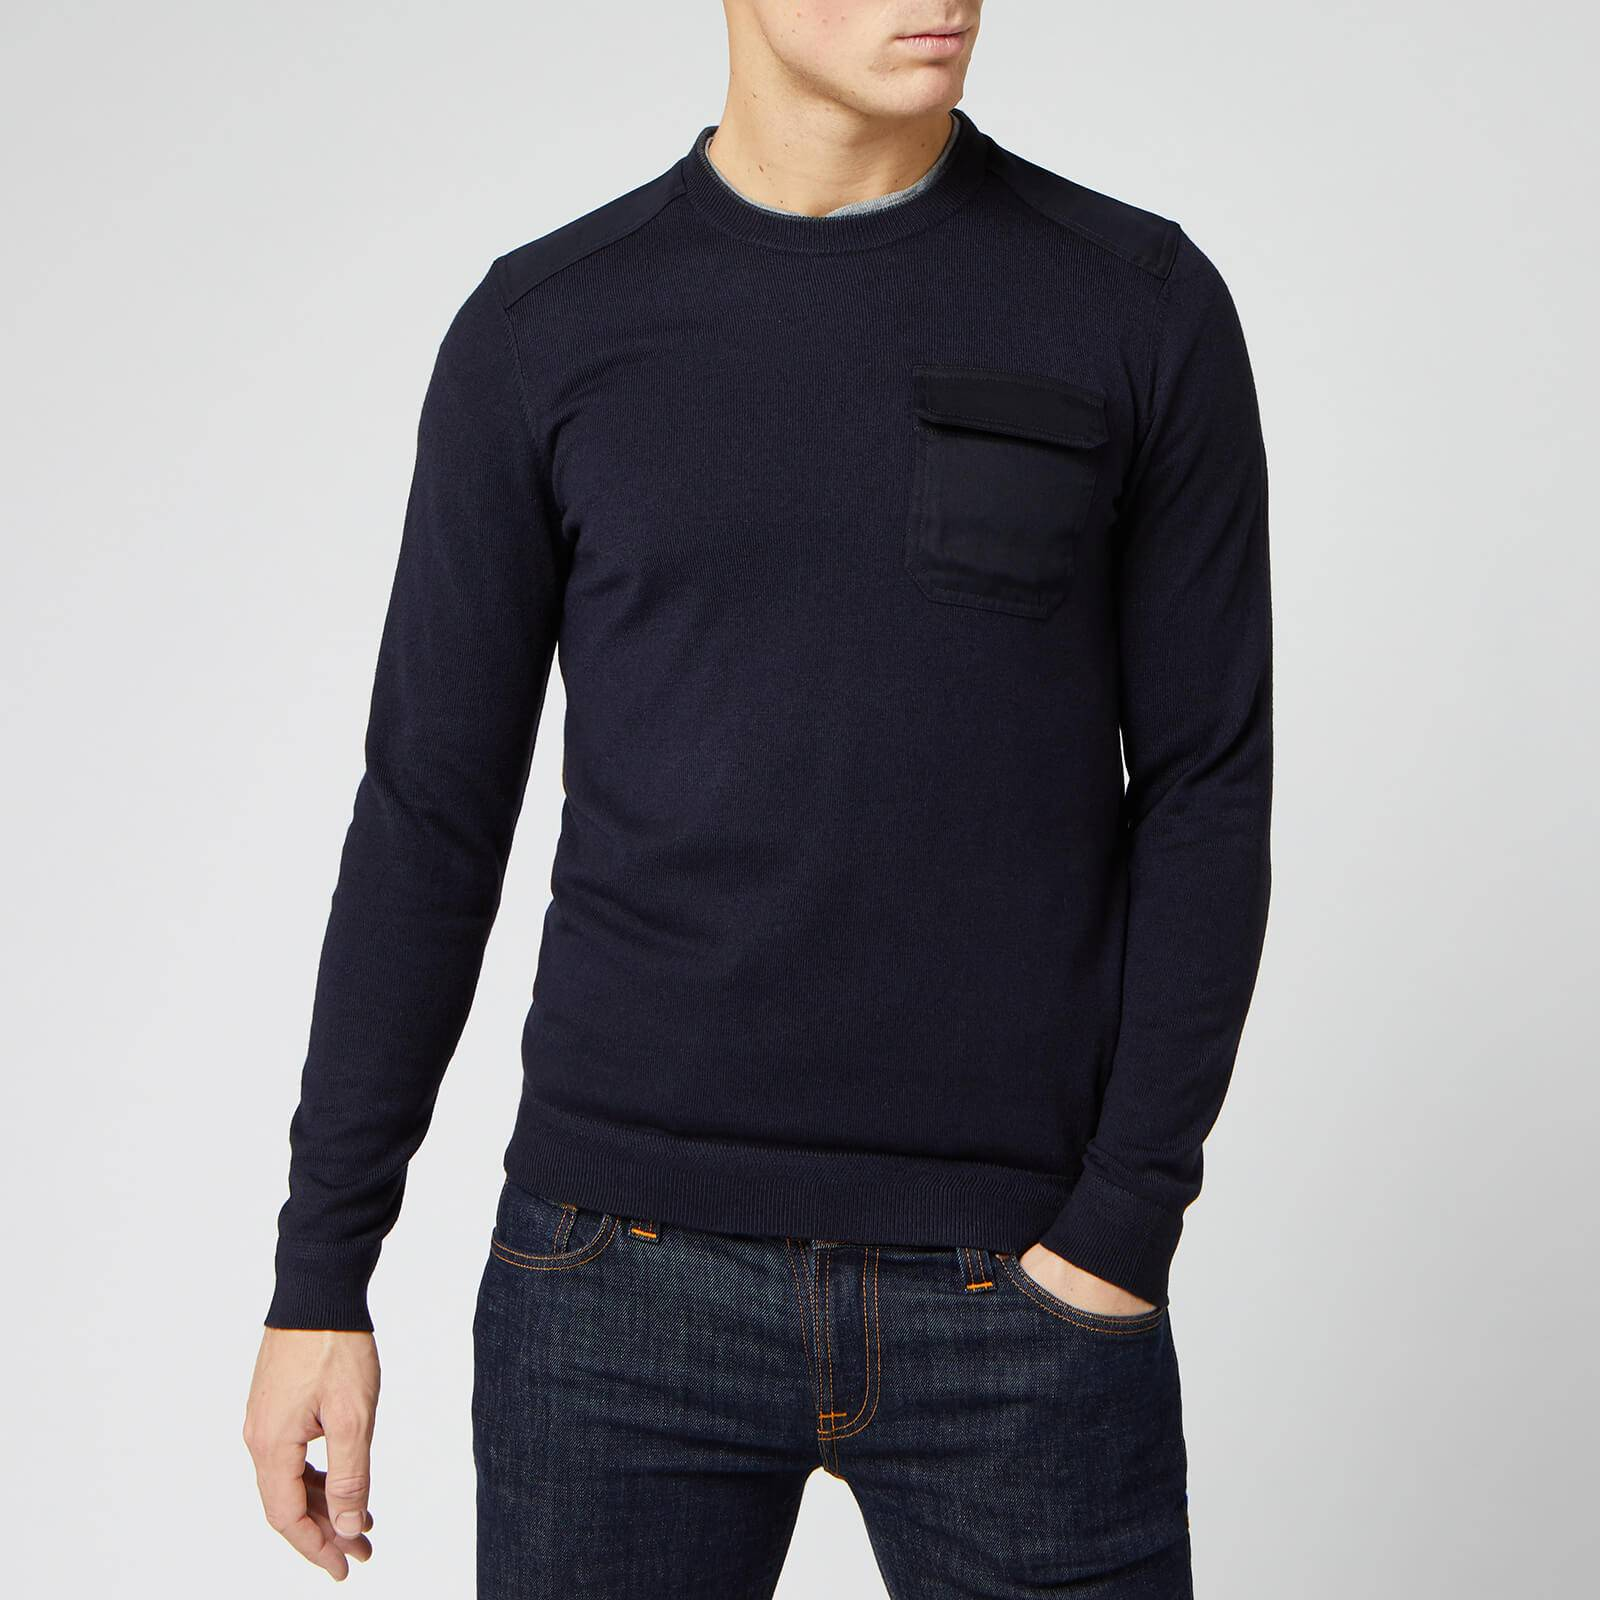 Ted Baker Men's Saysay Crew Neck Sweatshirt with Patch Pocket - Navy - L/4